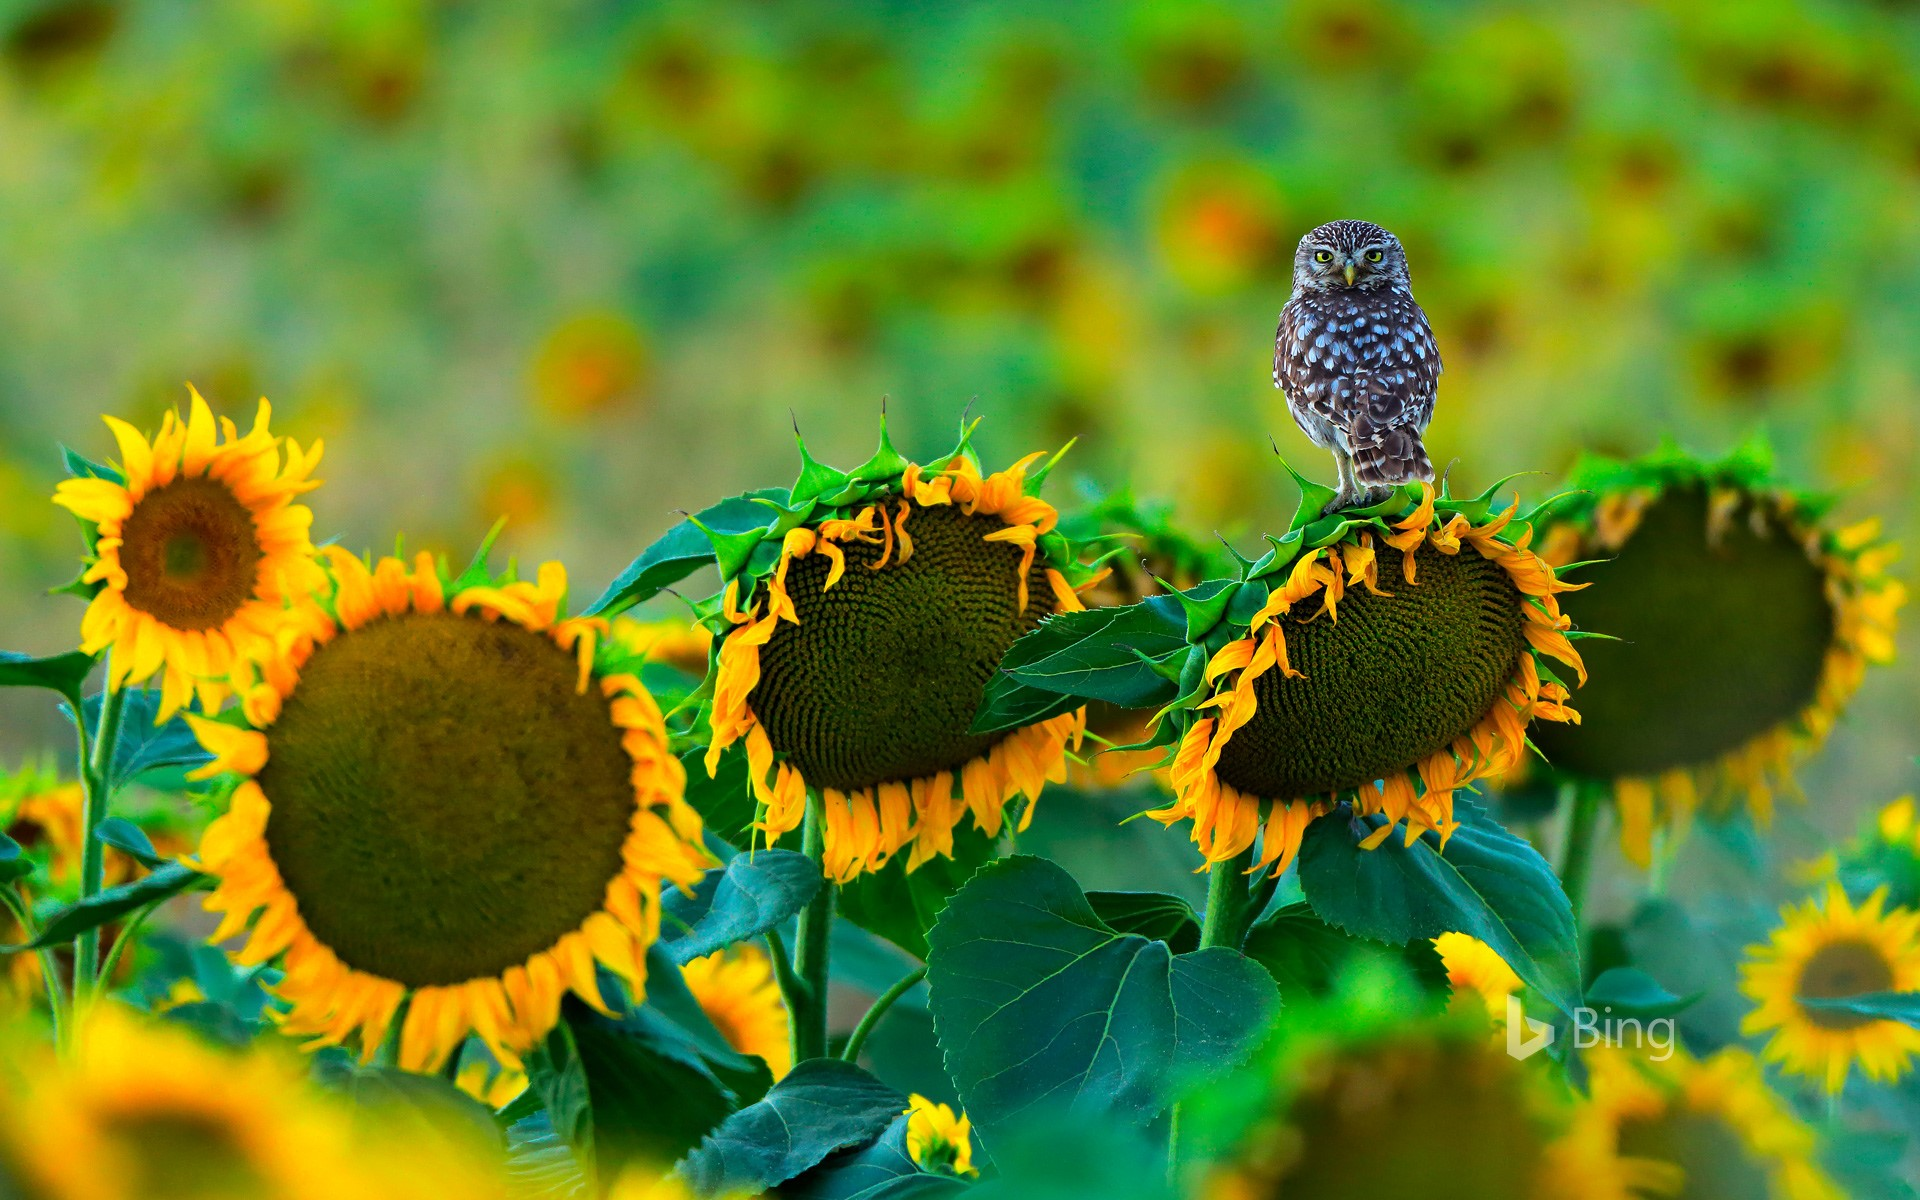 Little owl perched on a sunflower, Cadiz, Andalusia, Spain